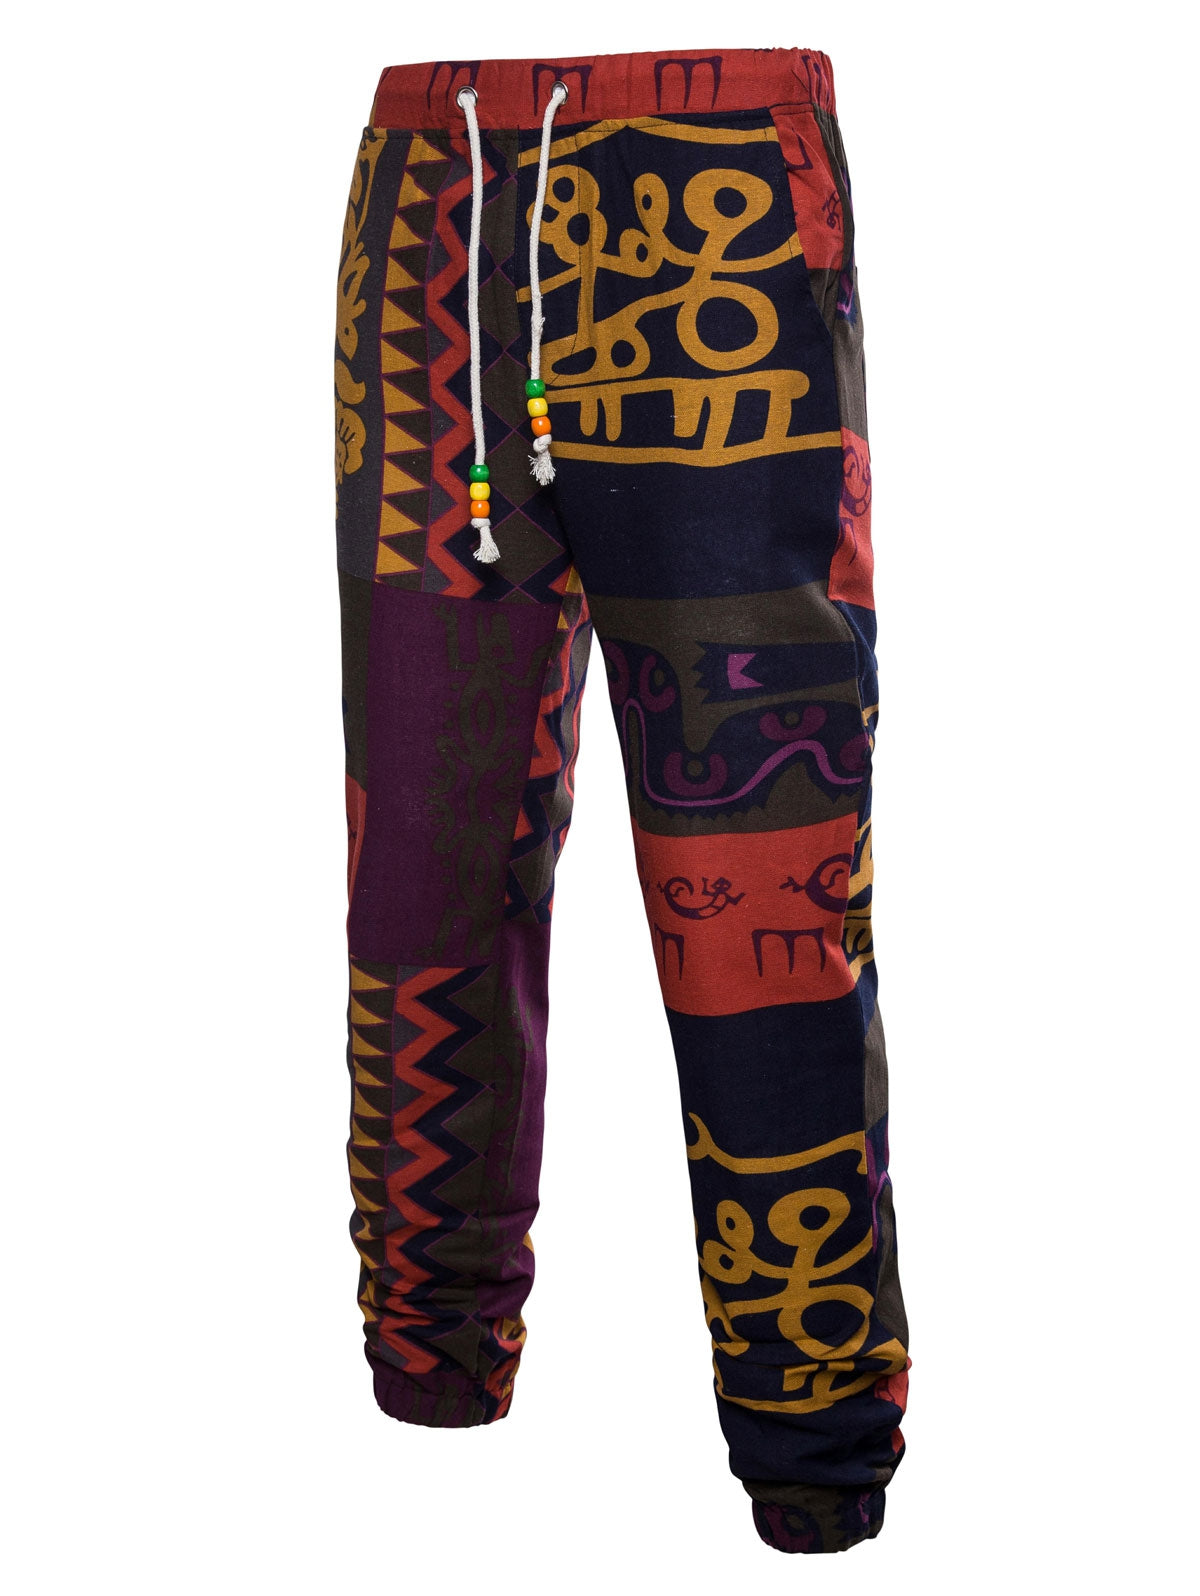 Men's Ethnic Wall Gecko Print Narrow Feet Jogger Pants